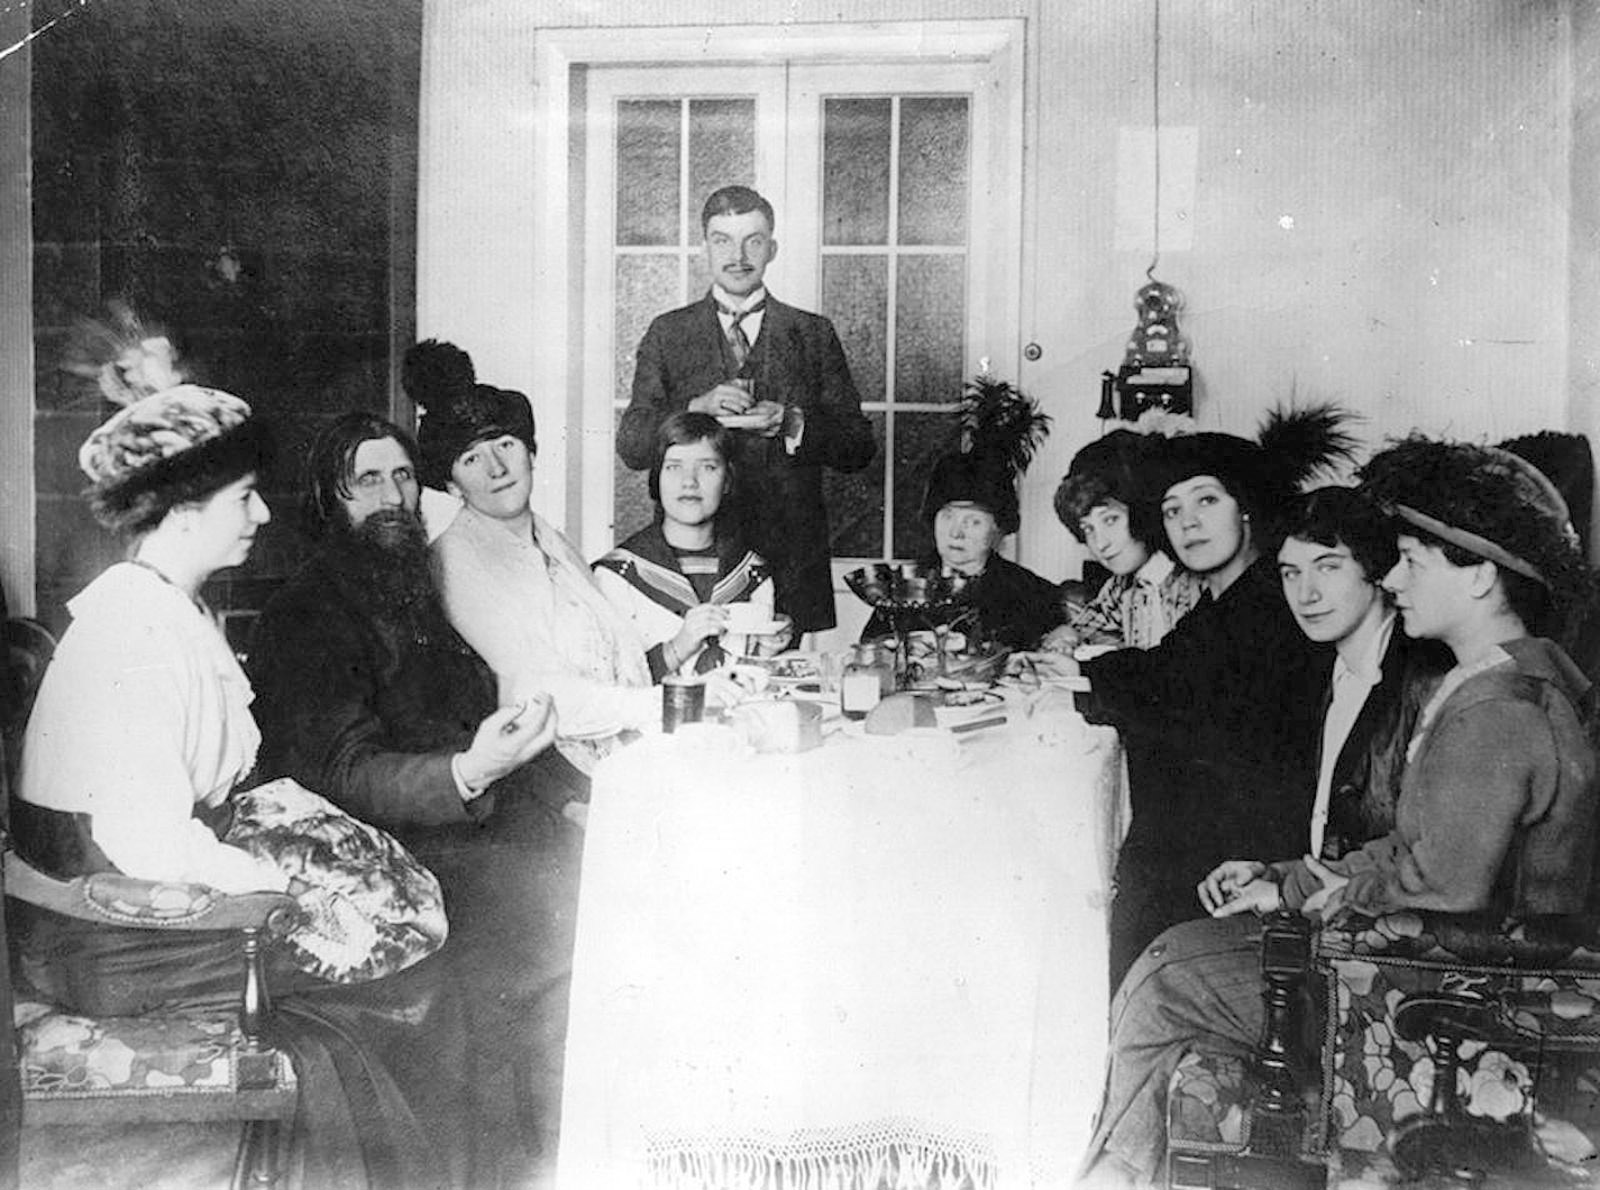 Rasputin with some of his admirers, St. Petersburg, circa March 1914. Among them xare Tsarina Alexandra's close friend Lily Dehn (third from left), Rasputin's daughter Maria (fourth from left), and Munya Golovina (far right), a devoted disciple who introduced Rasputin to Felix Yusupov, one of his killers.